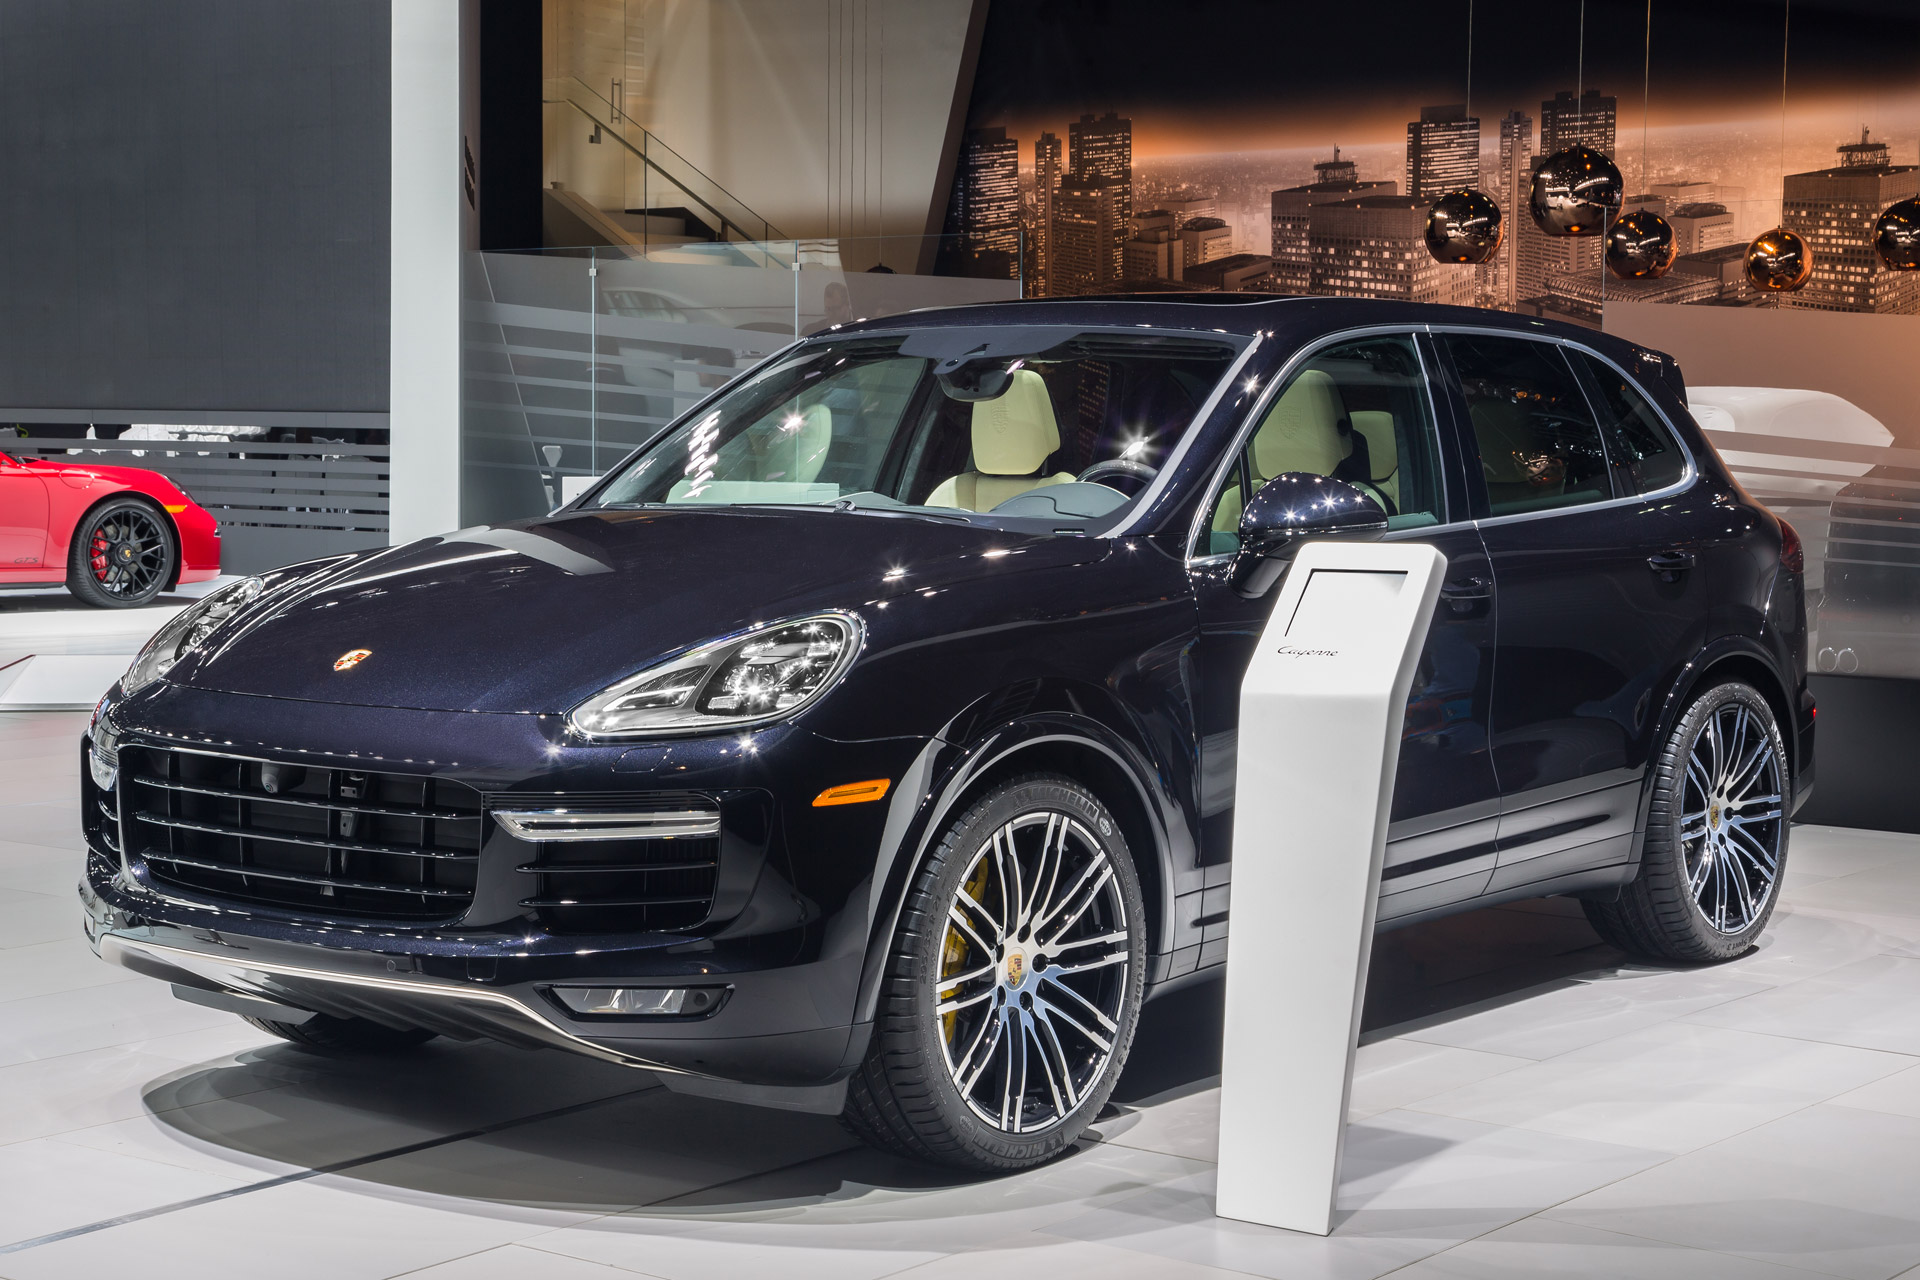 2016 porsche cayenne turbo s 570 hp and sub 8 minute. Black Bedroom Furniture Sets. Home Design Ideas